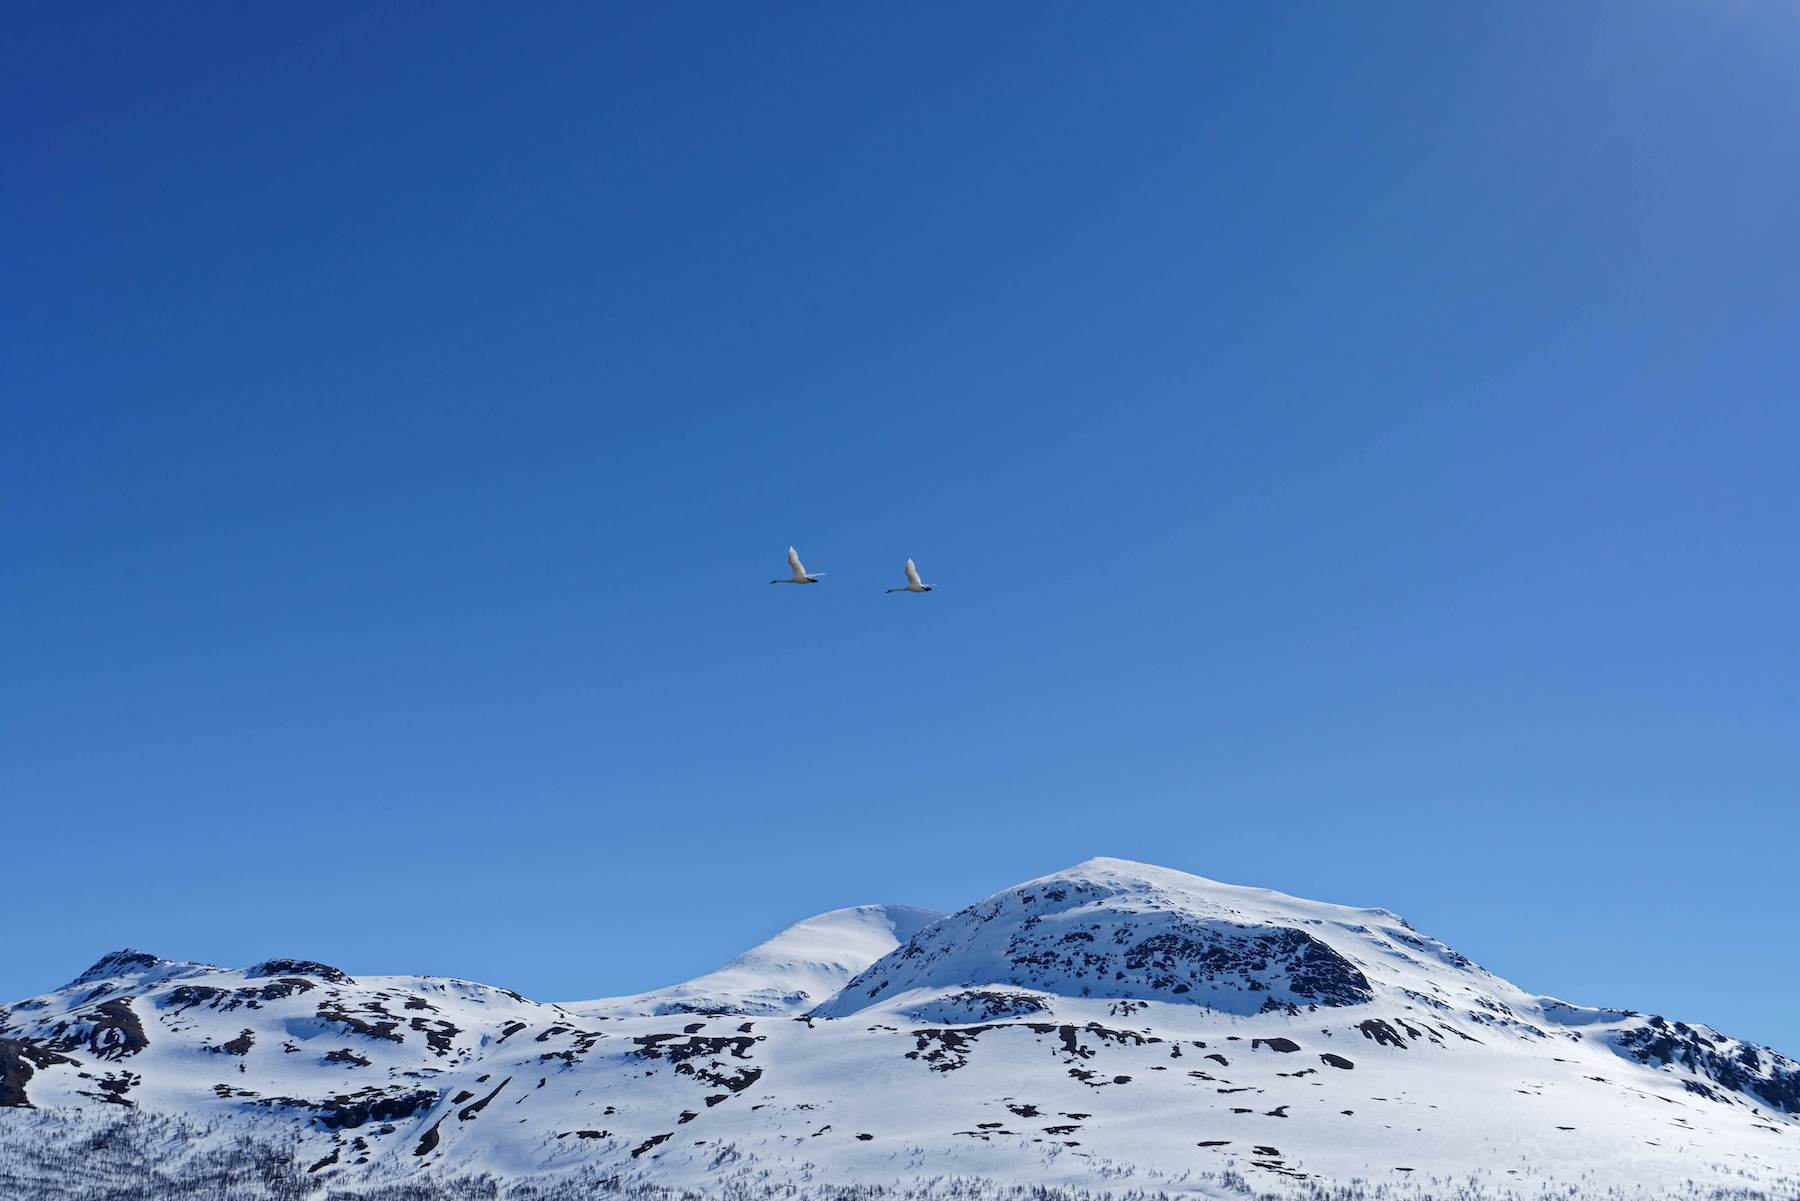 Birds migrating against a blue sky with a mountain top in the background